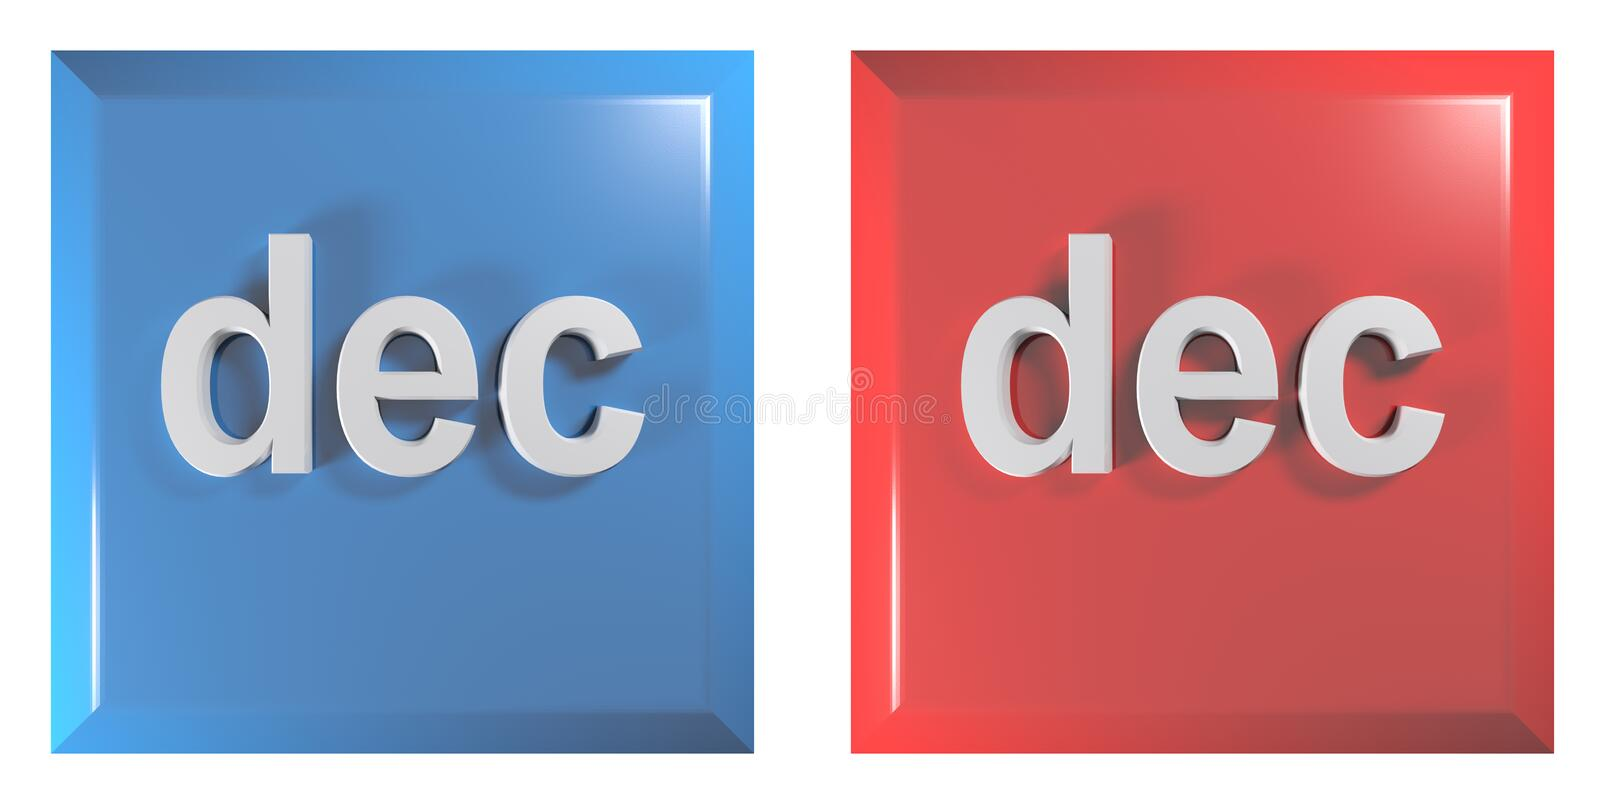 Blue and red couple of square push buttons DECEMBER - 3D rendering illustration. A couple of square push buttons, blue and red, isolated on white background royalty free illustration